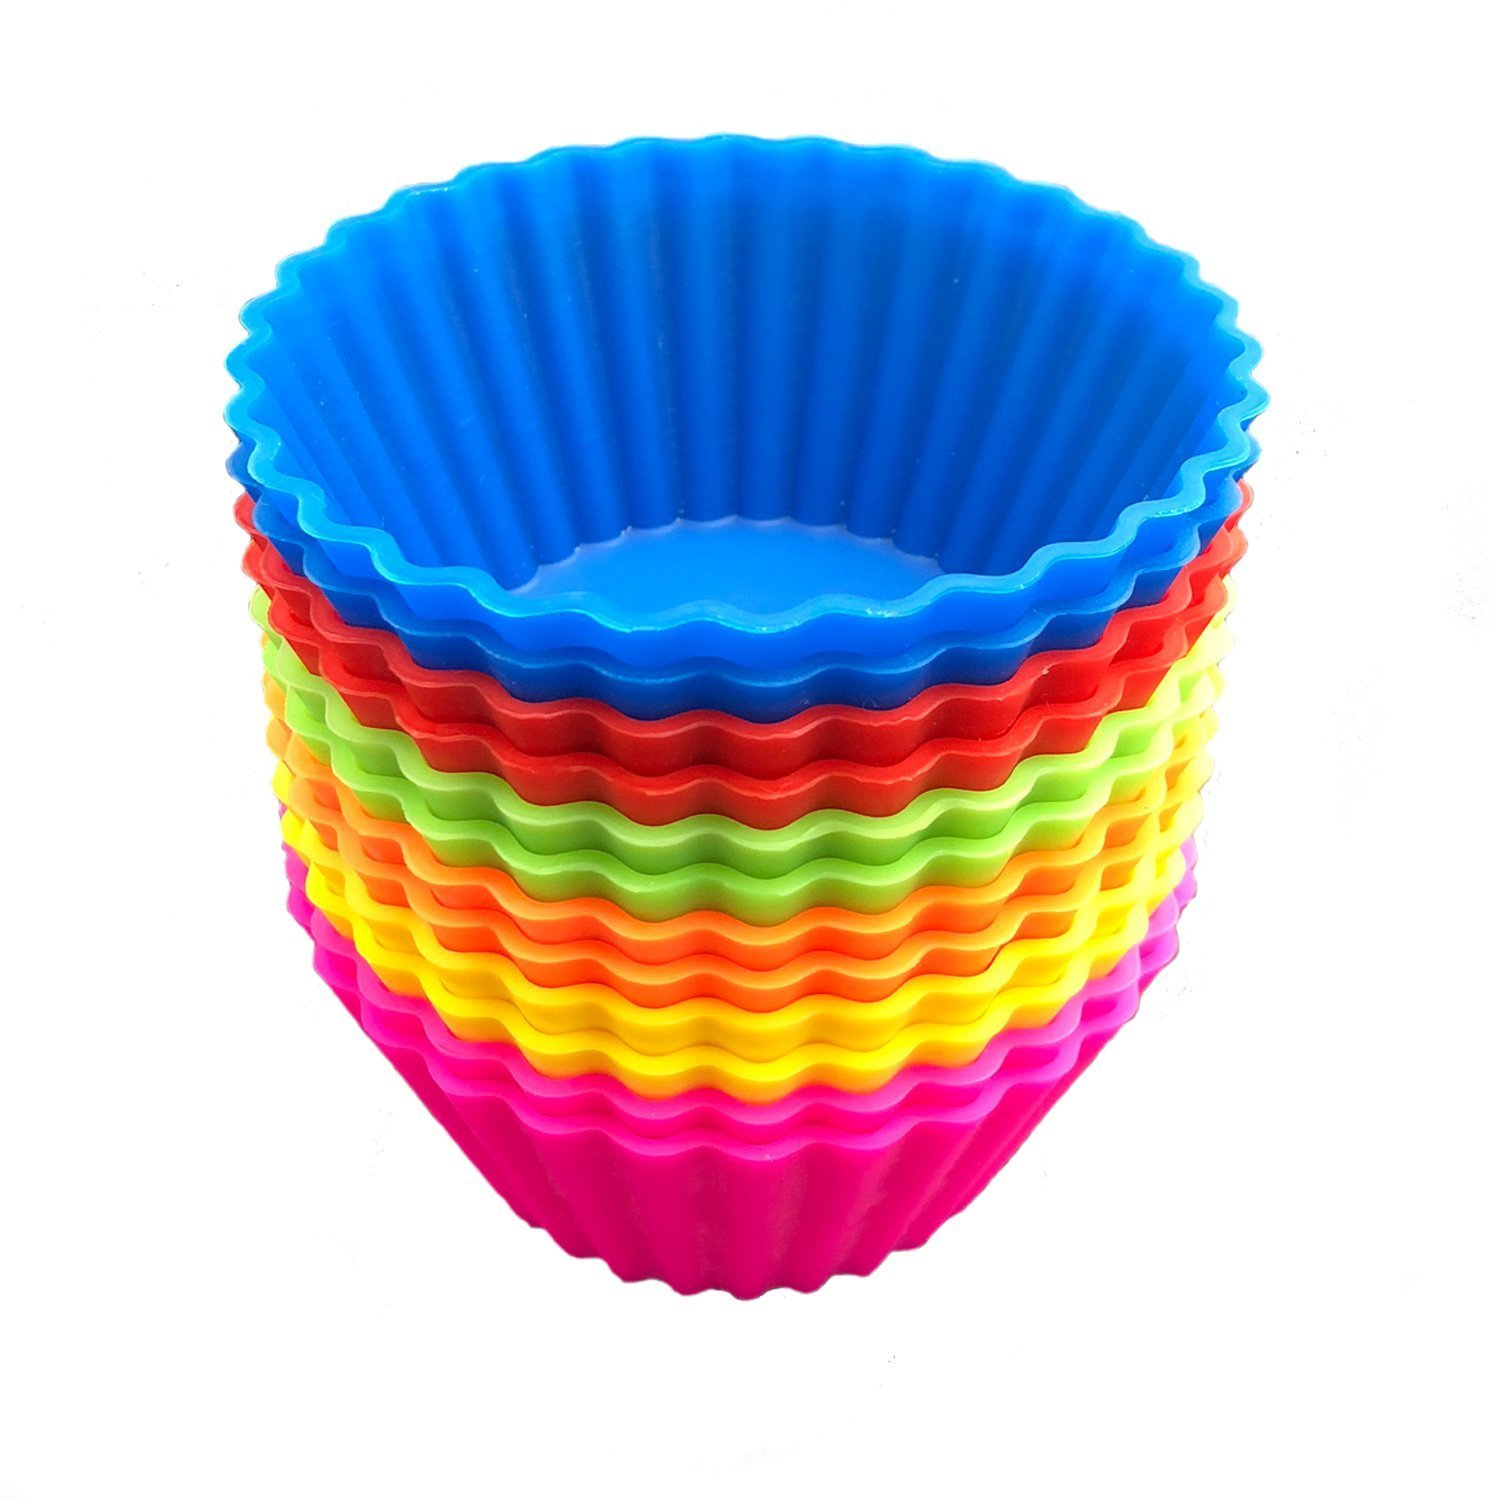 SAWNZC Jumbo Silicone Baking Cups Cupcake Liners Muffin Cups Cake Molds Large 3.54 inch Reusable and Non-stick, 12 Packs in 6 Rainbow Colors